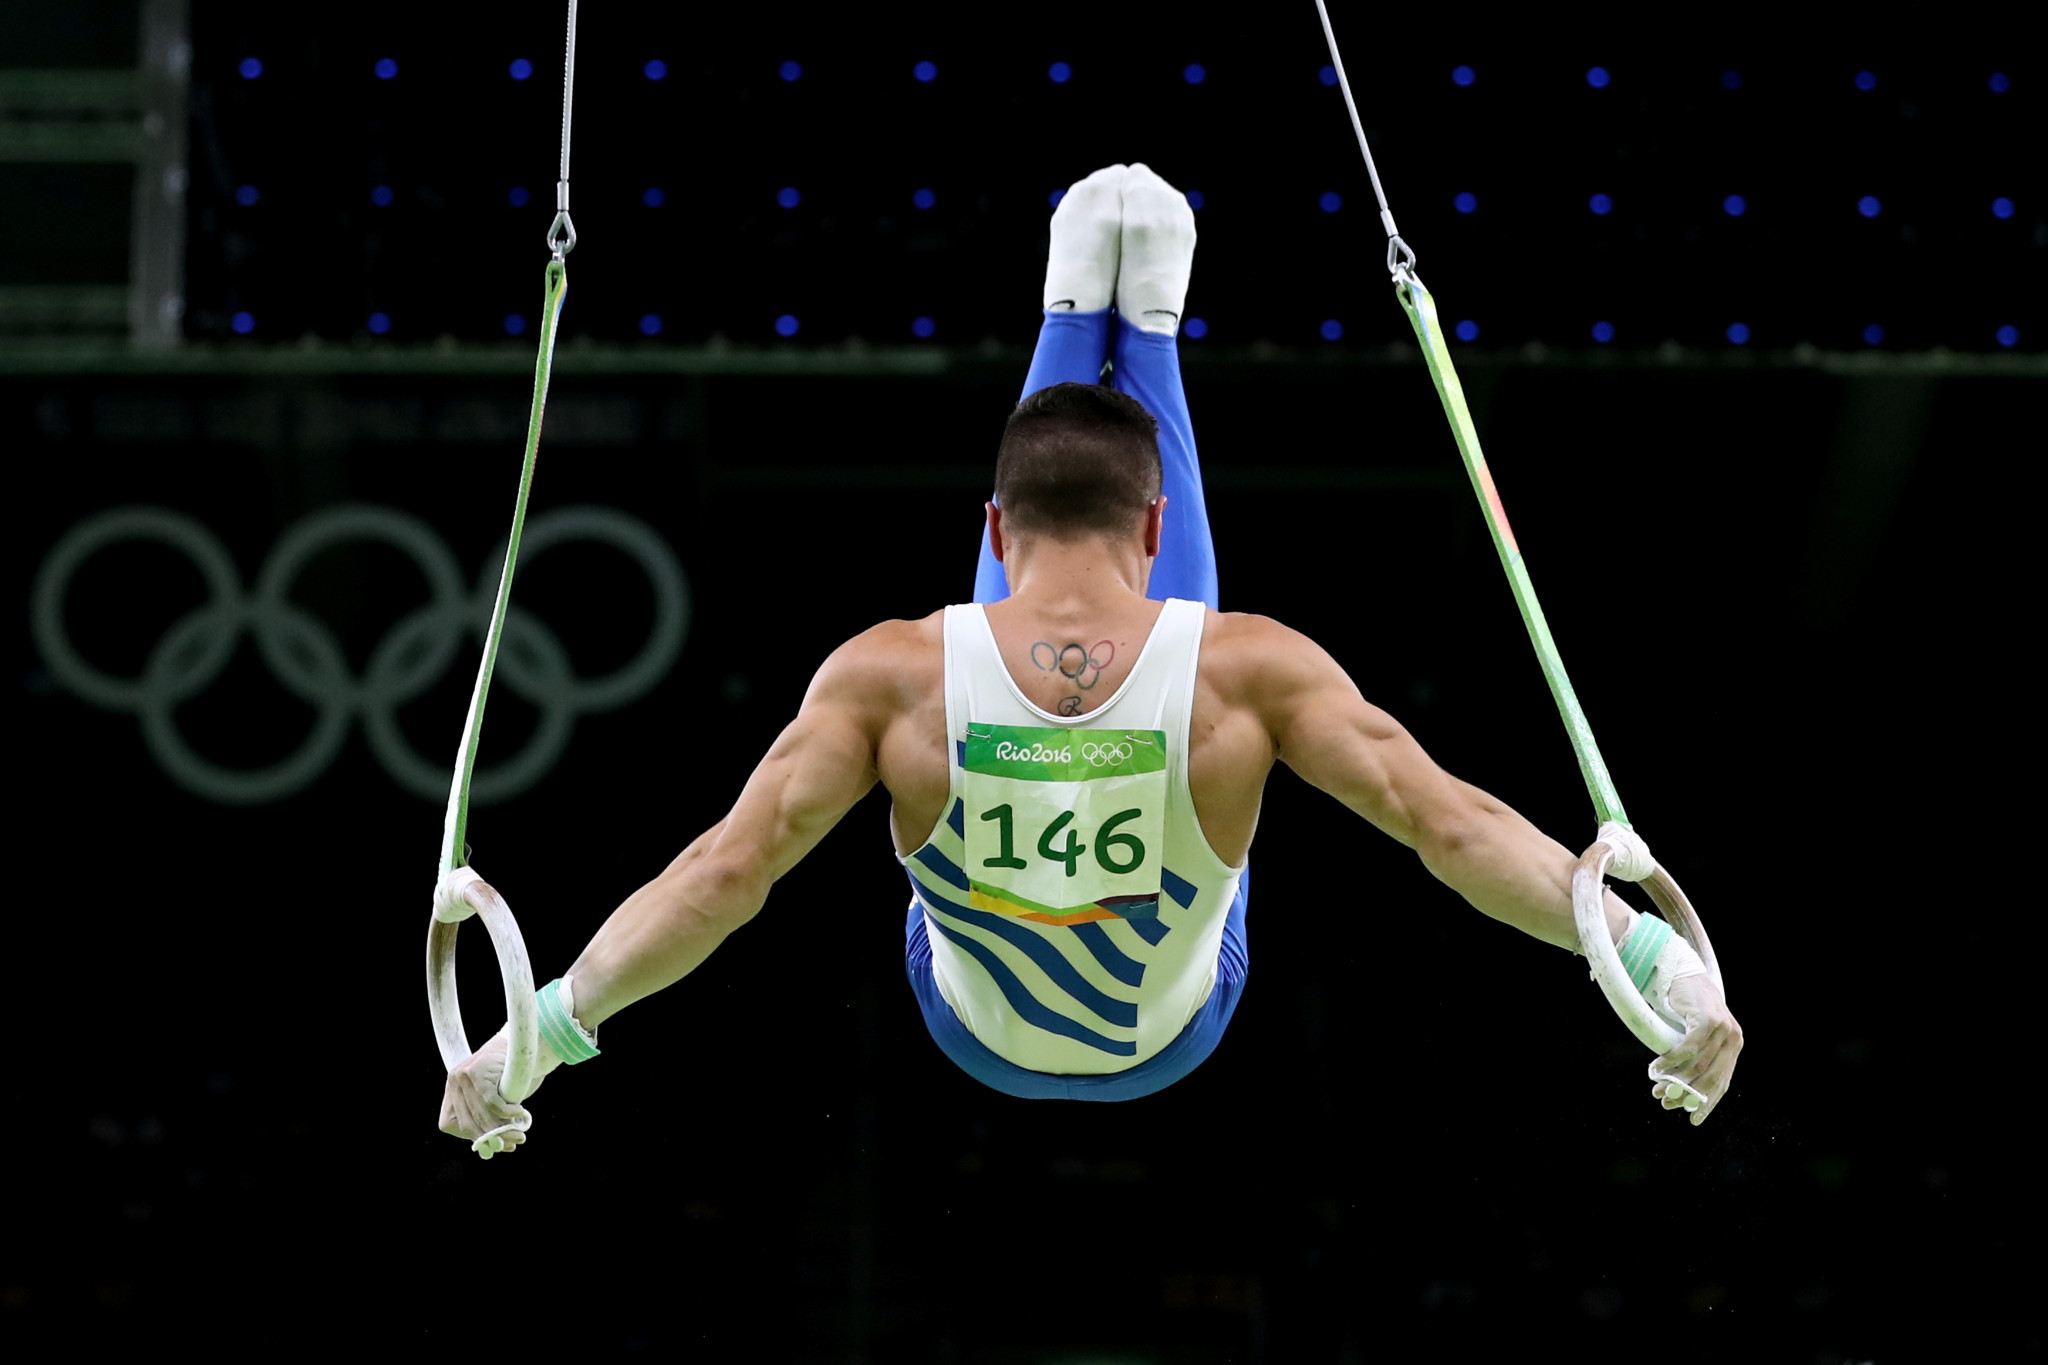 Only men compete on the rings in artistic gymnastics events ©Getty Images